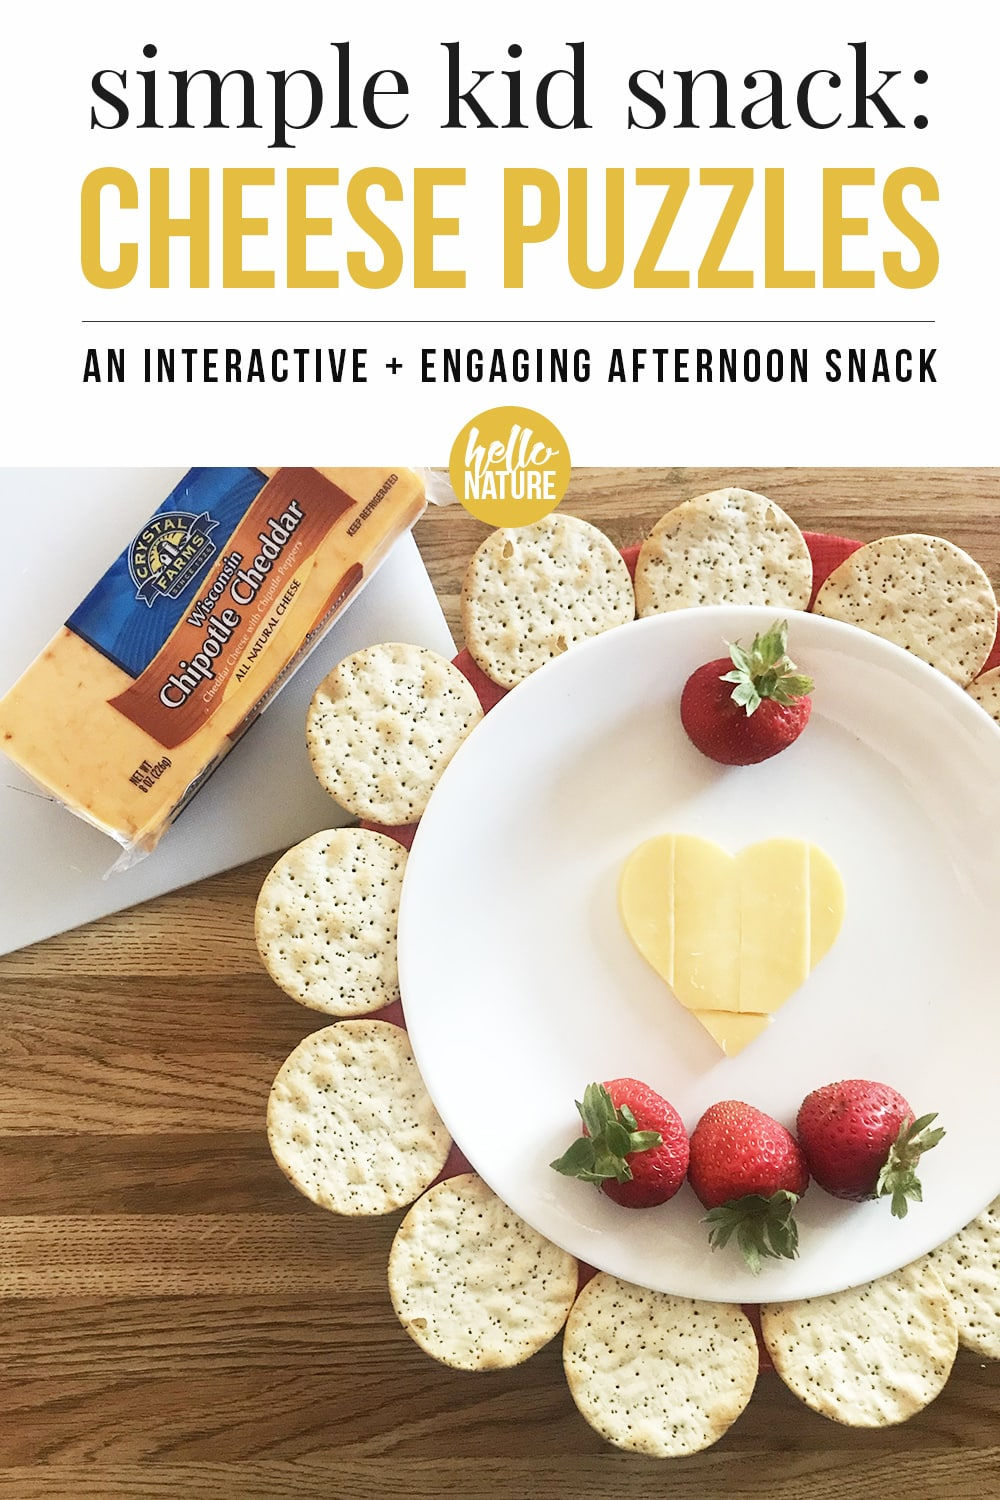 Simple Kid Snack: Cheese Puzzles